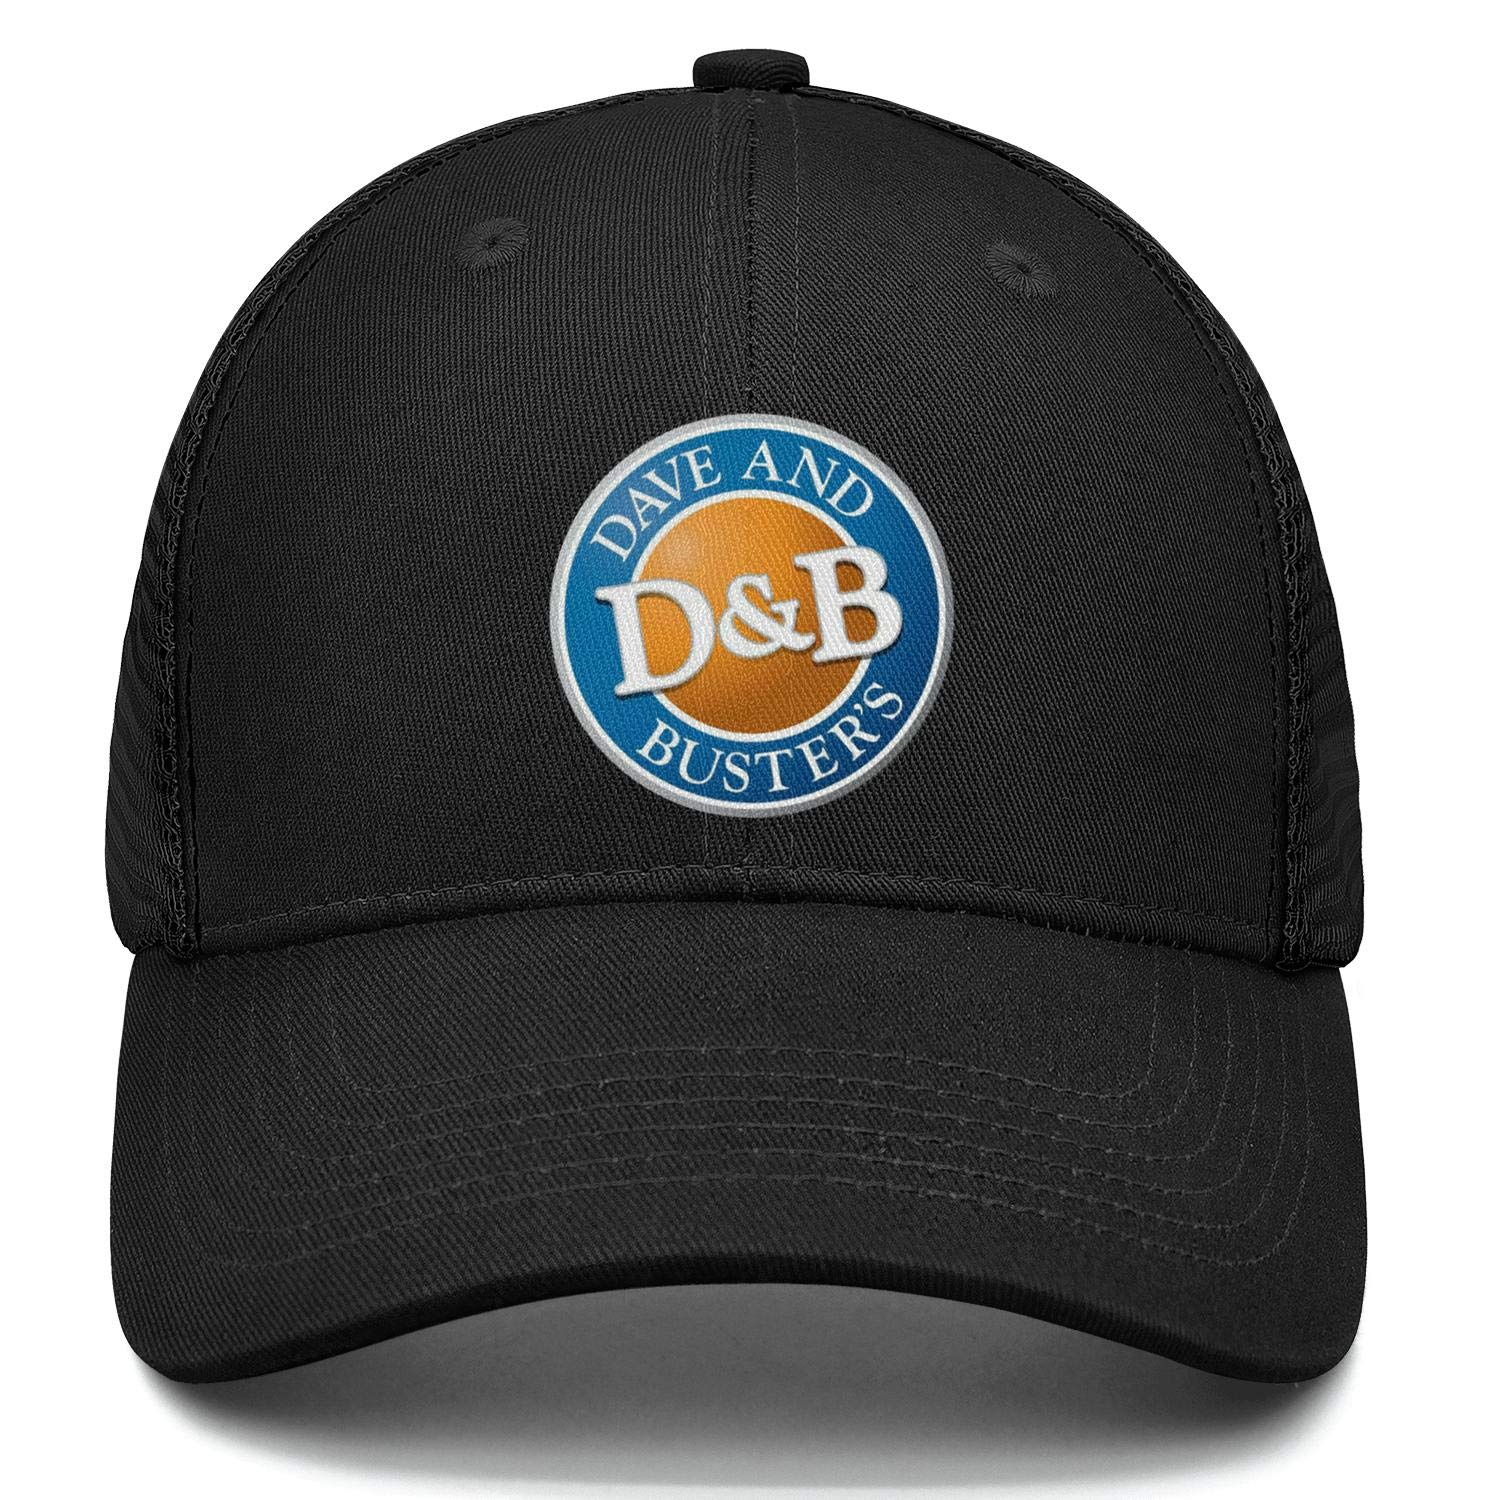 WintyHC Dave /& Busters-Logo Cowboy Hat Bucket Hat Adjustable Fits Skull Cap